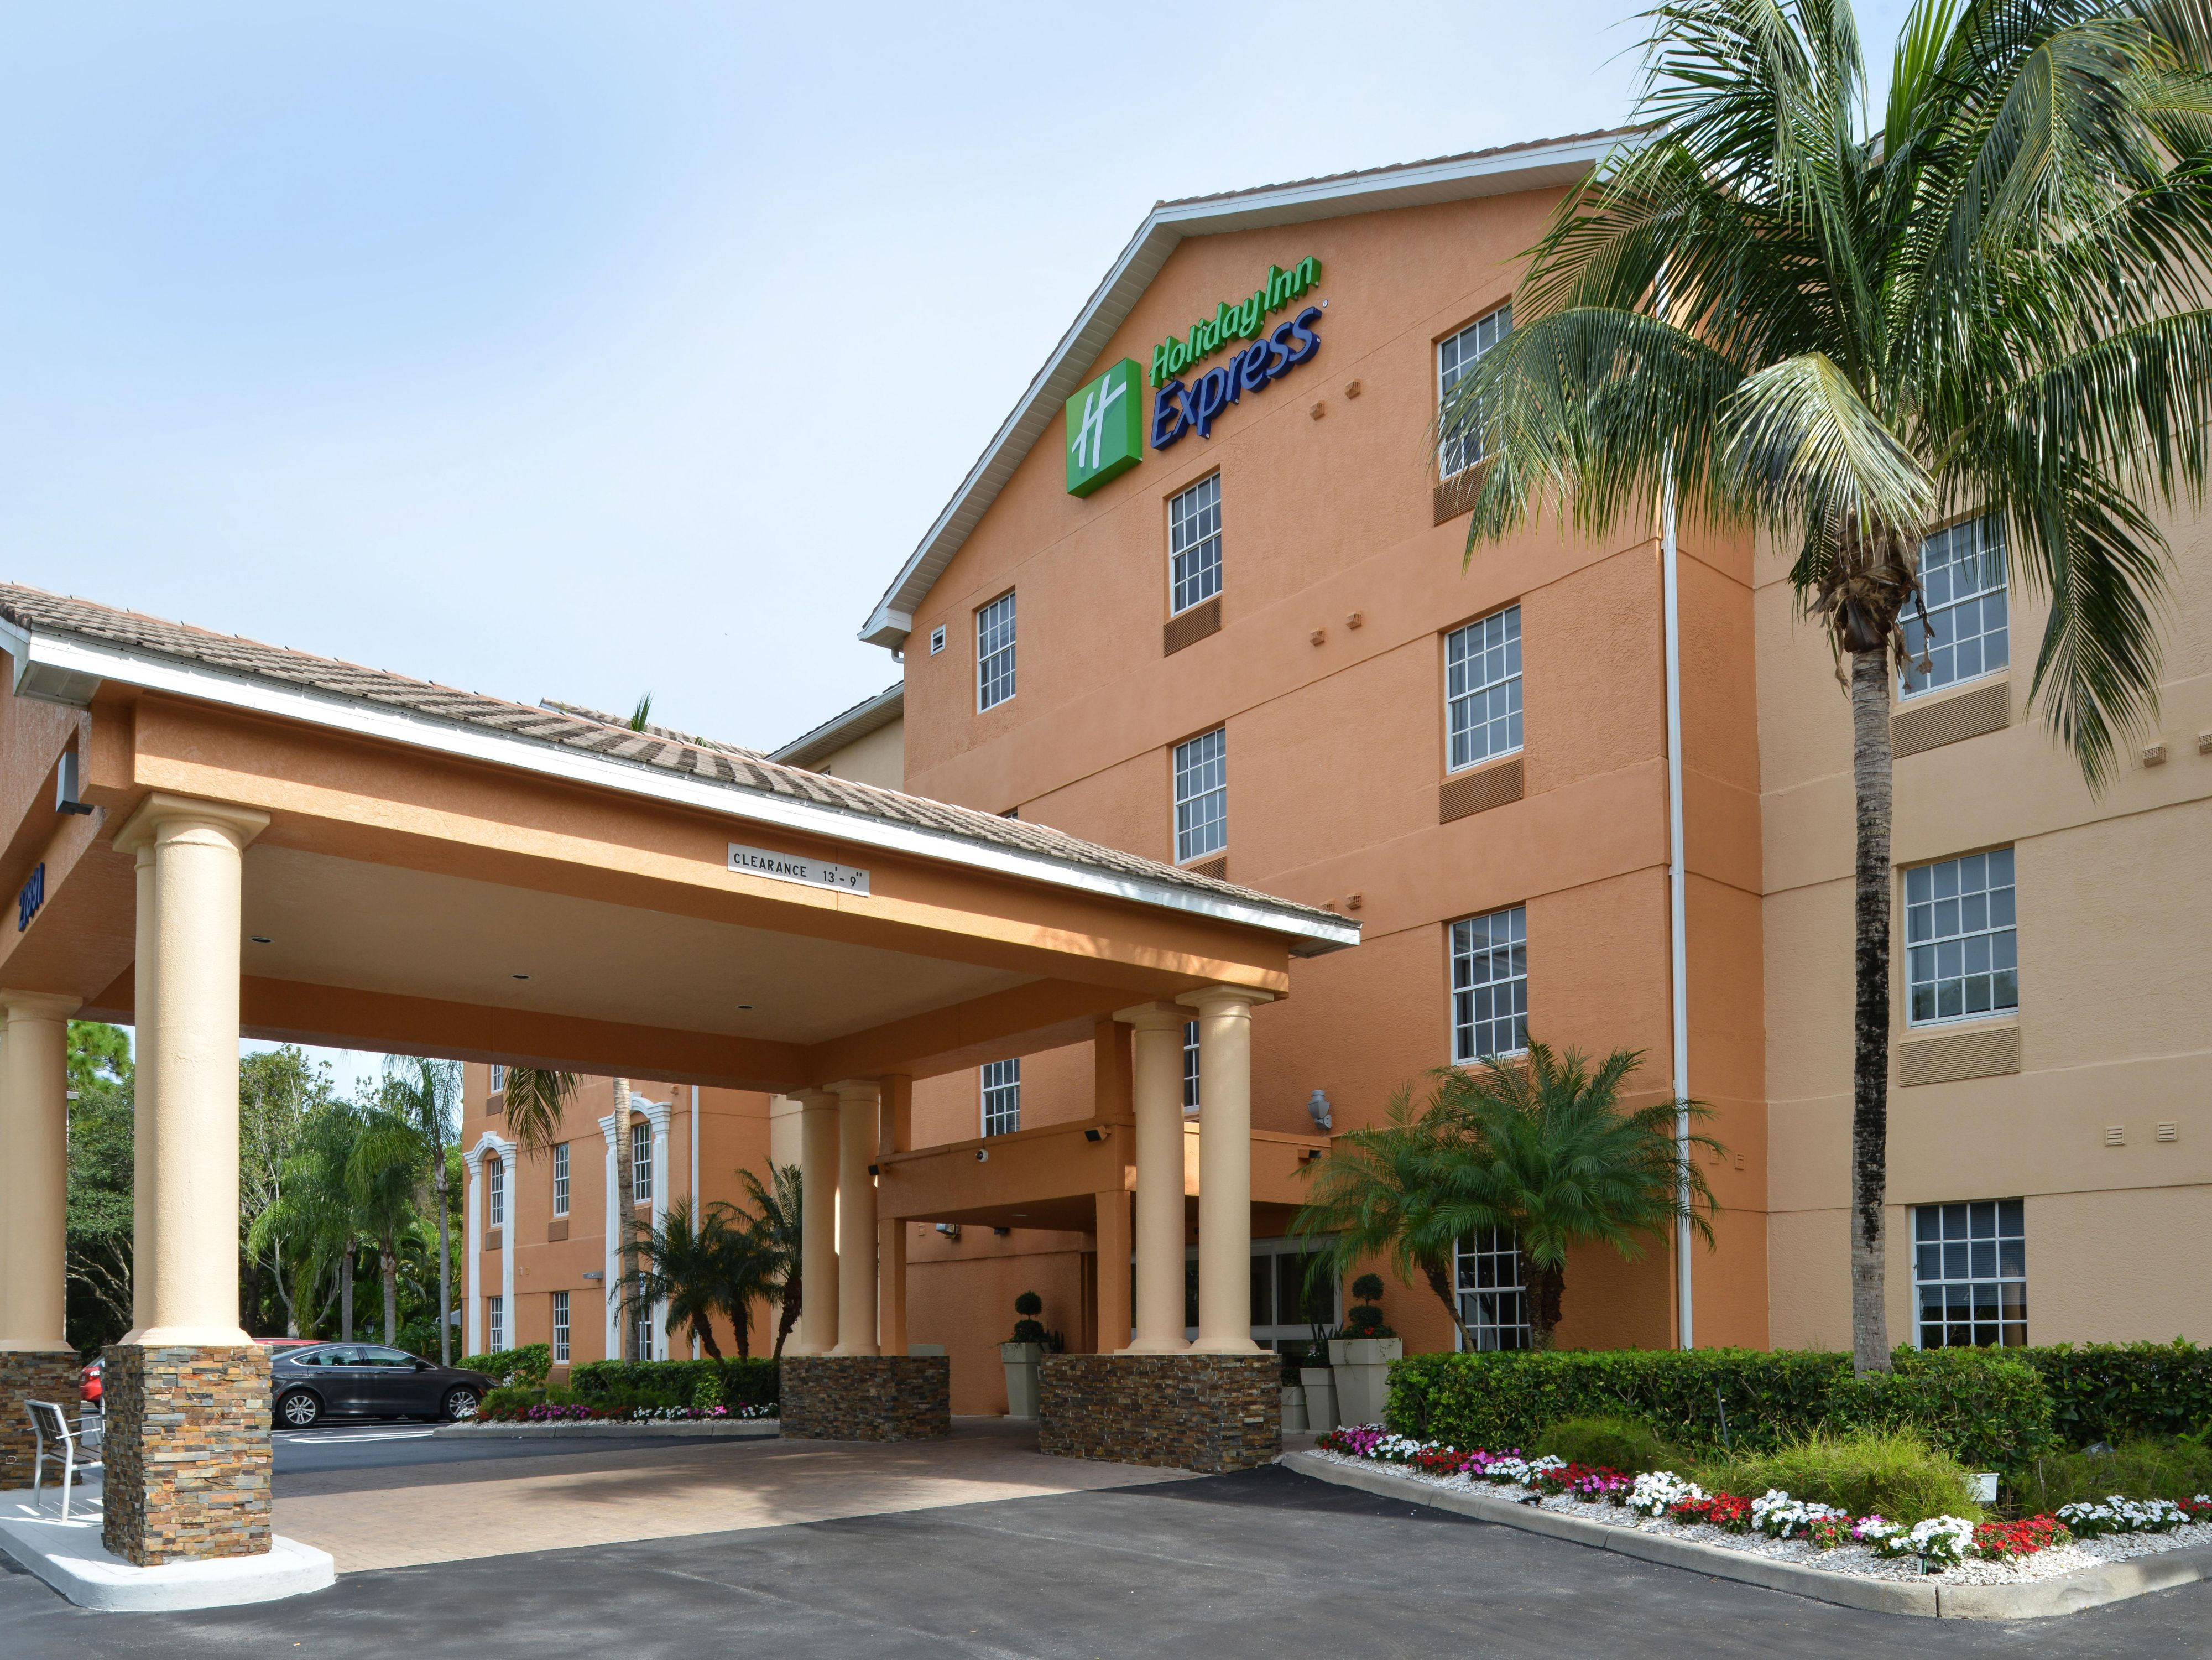 Holiday Inn Express & Suites Bonita Springs